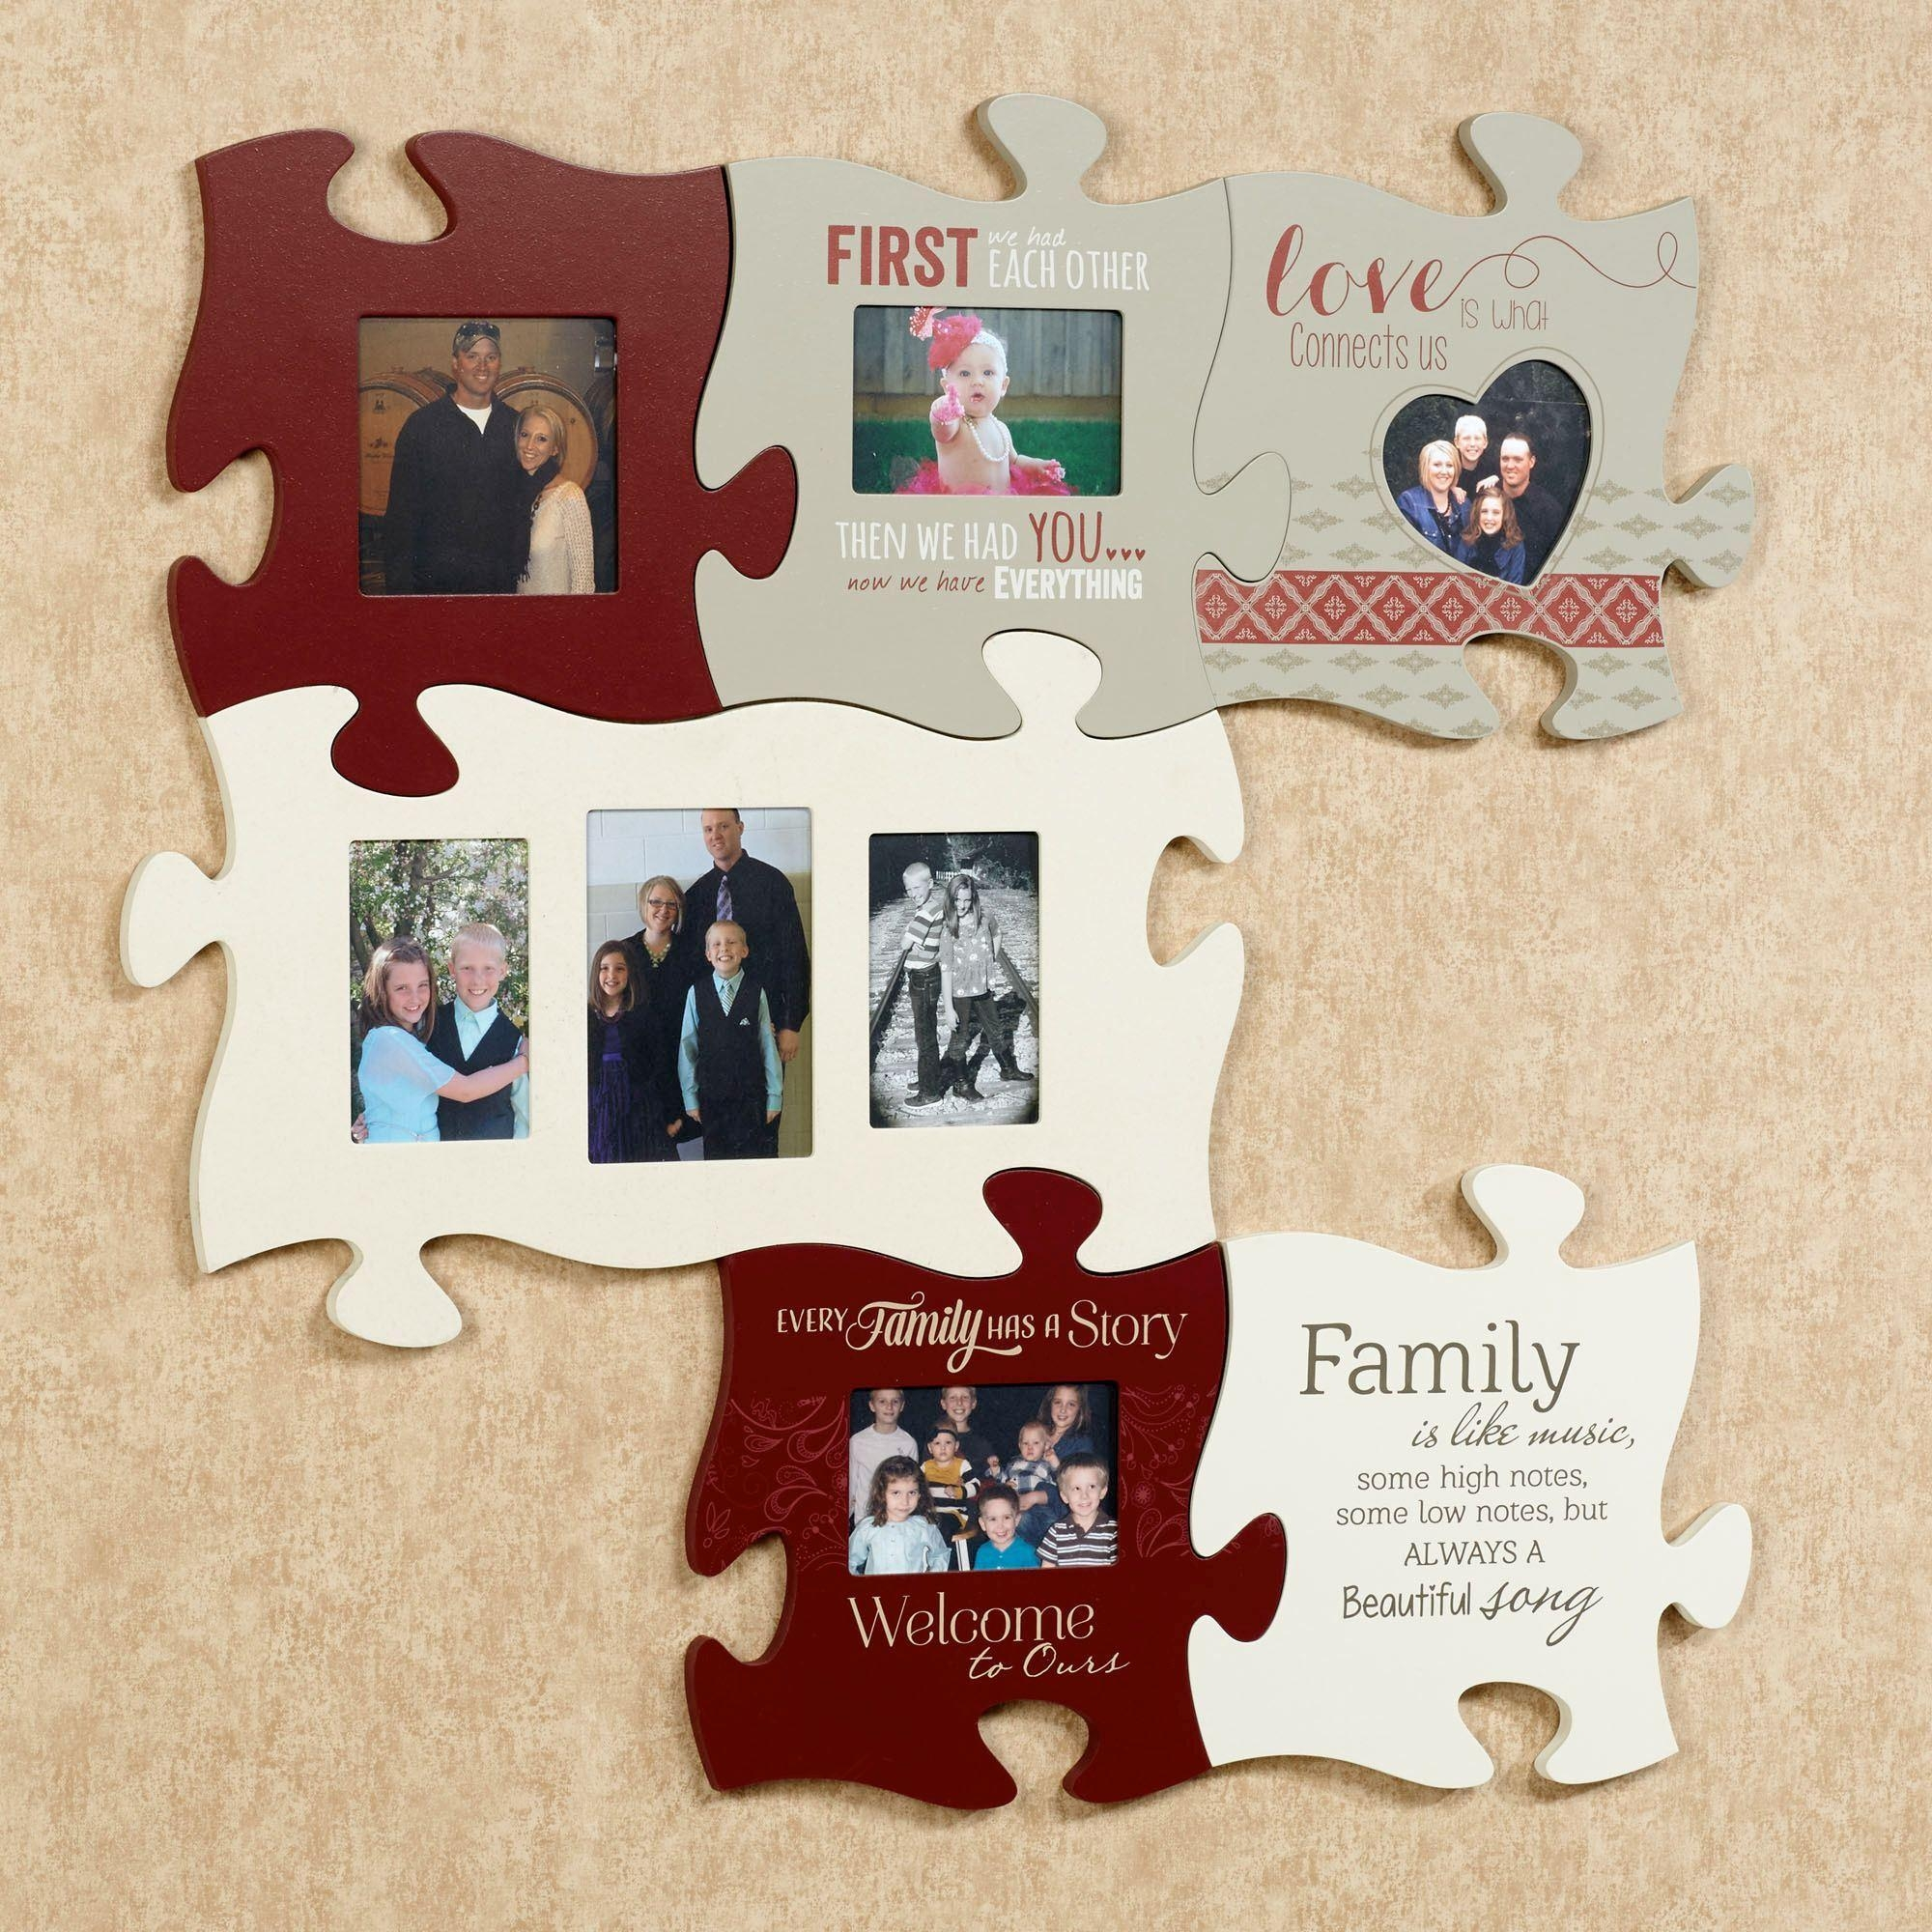 Every Family Photo Frame Puzzle Piece Wall Art Inside Family Wall Art Picture Frames (View 16 of 20)